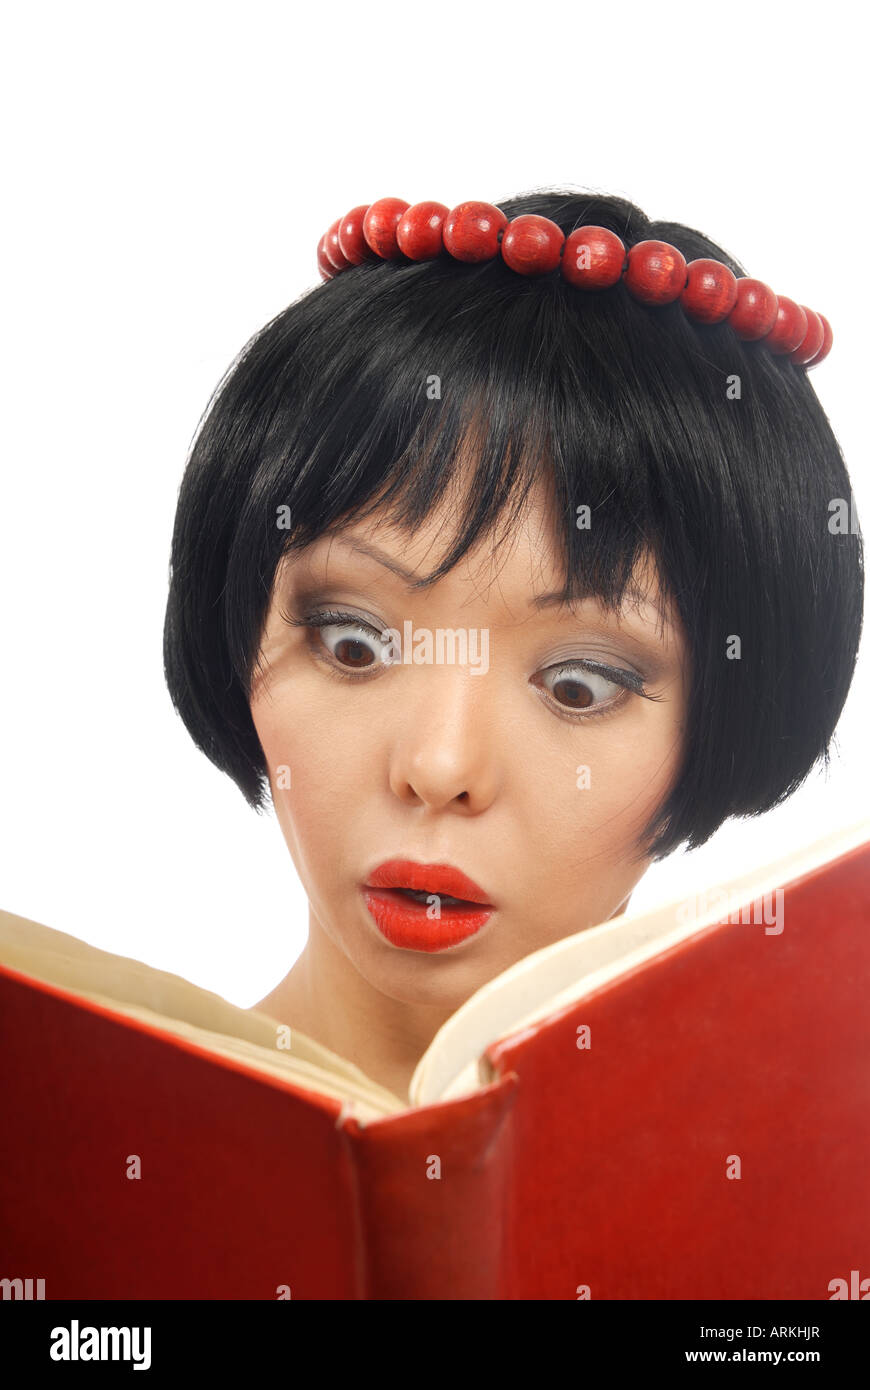 Emotional photo of the pretty model reading the red book - Stock Image